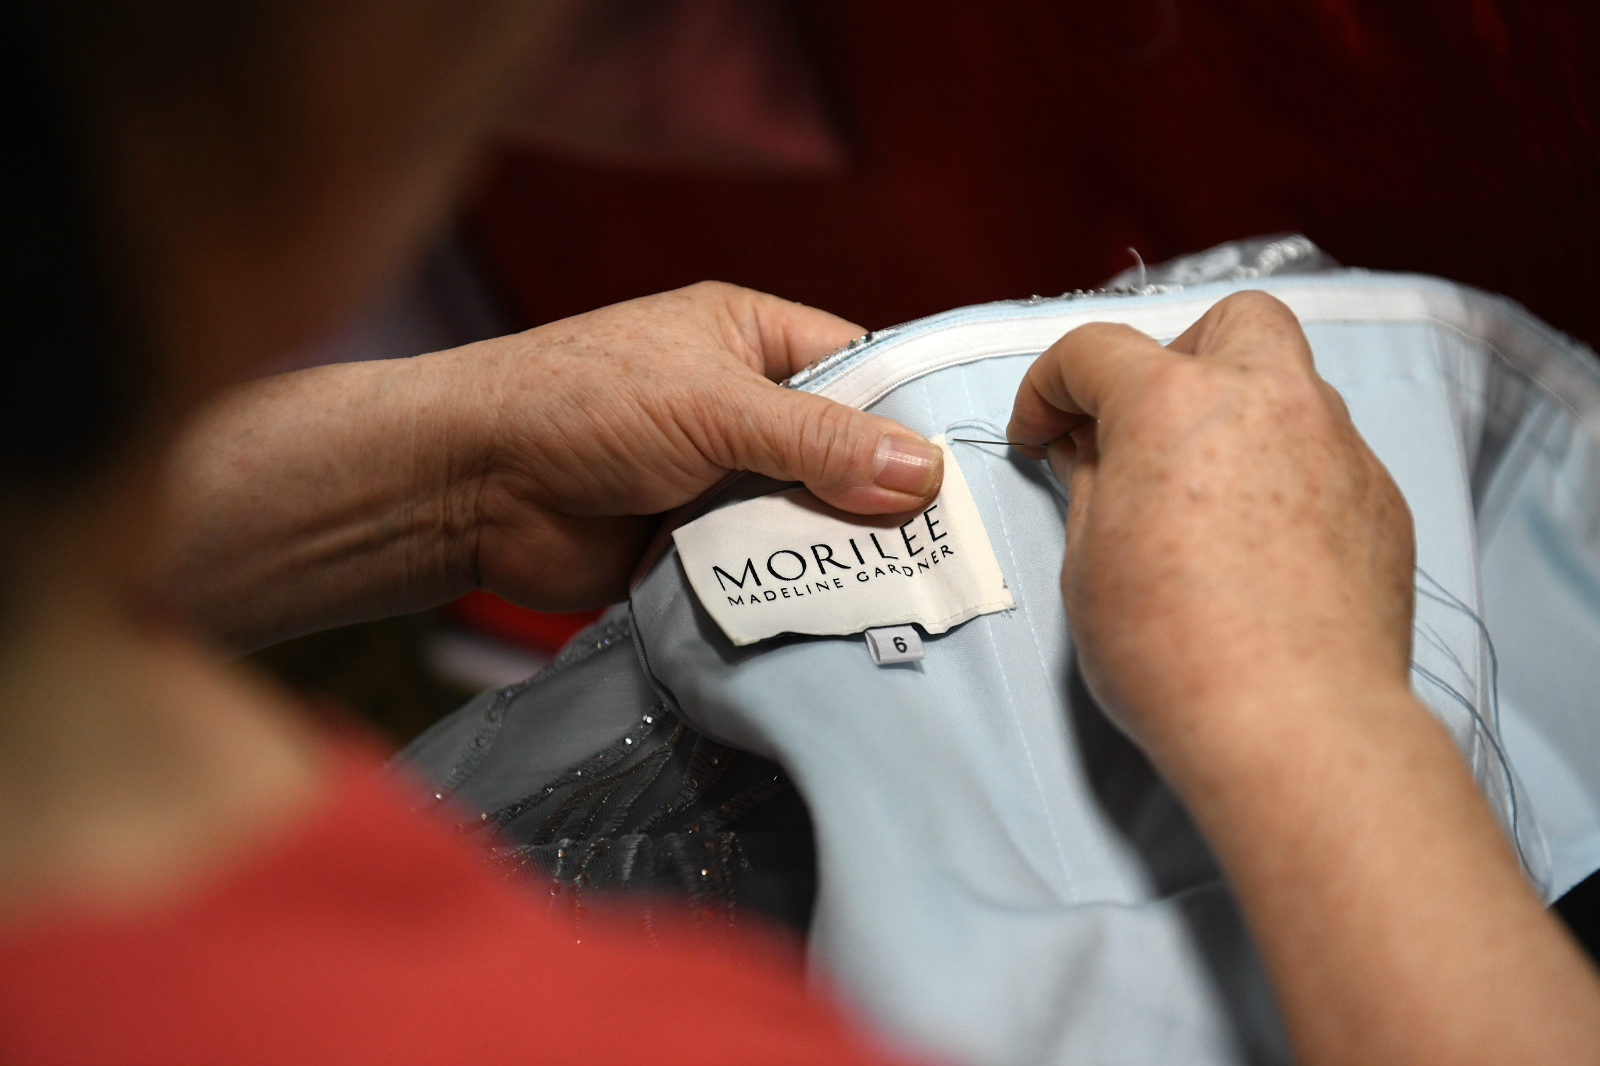 An embroiderer sews a brand label onto a Morilee dress at a factory in Chaozhou, south China